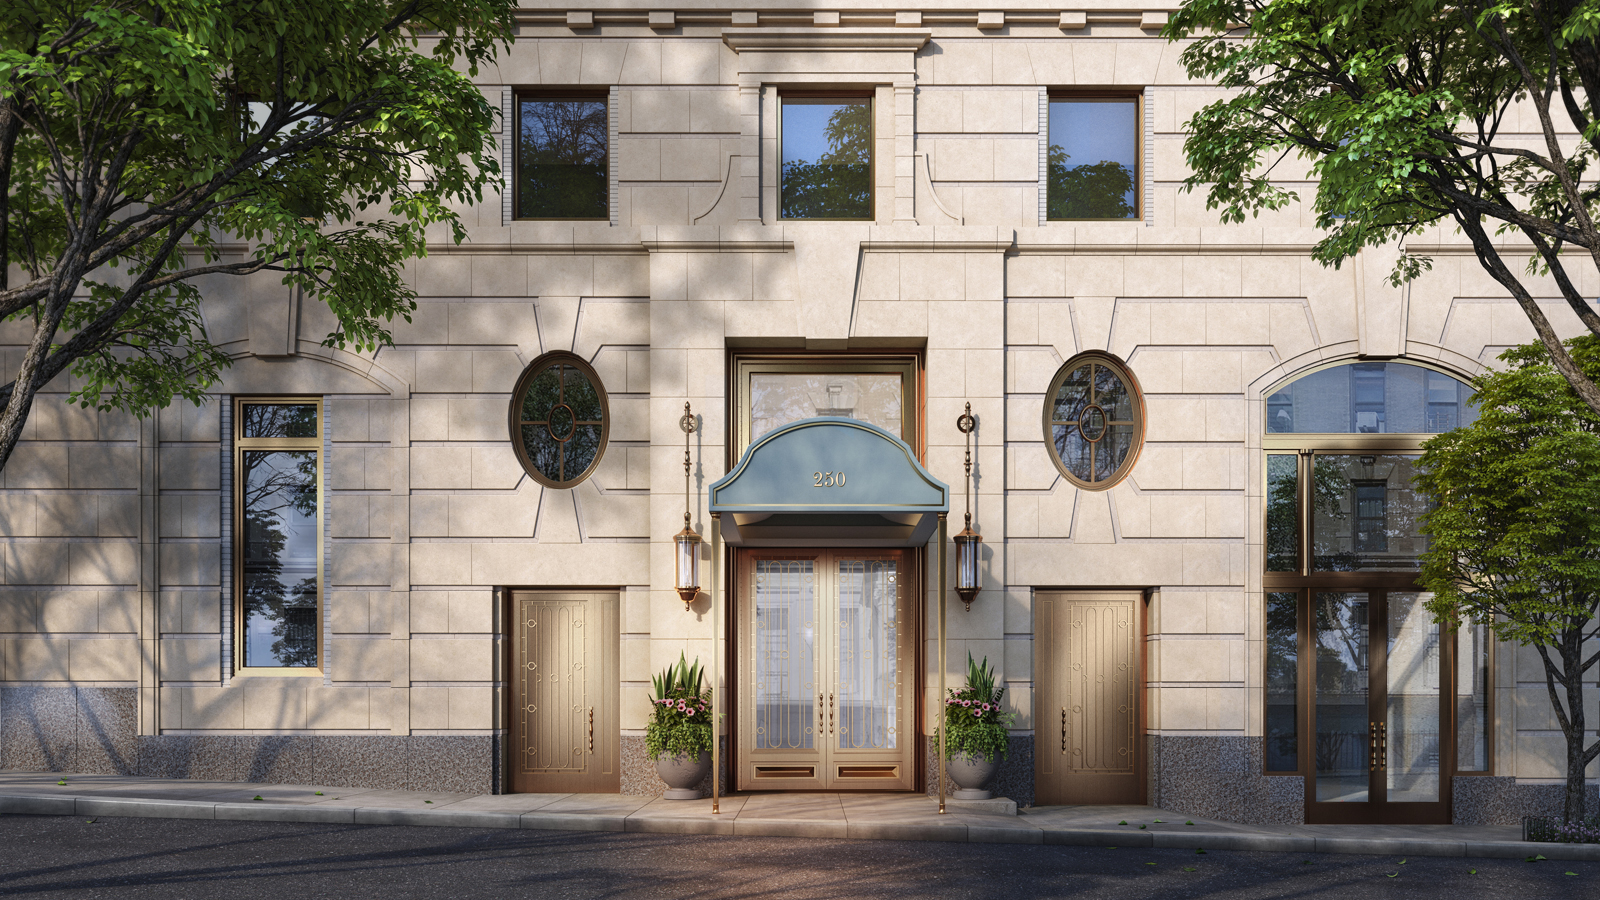 Two Fifty West 81st, 250 West 81st Street, NYC - Condo